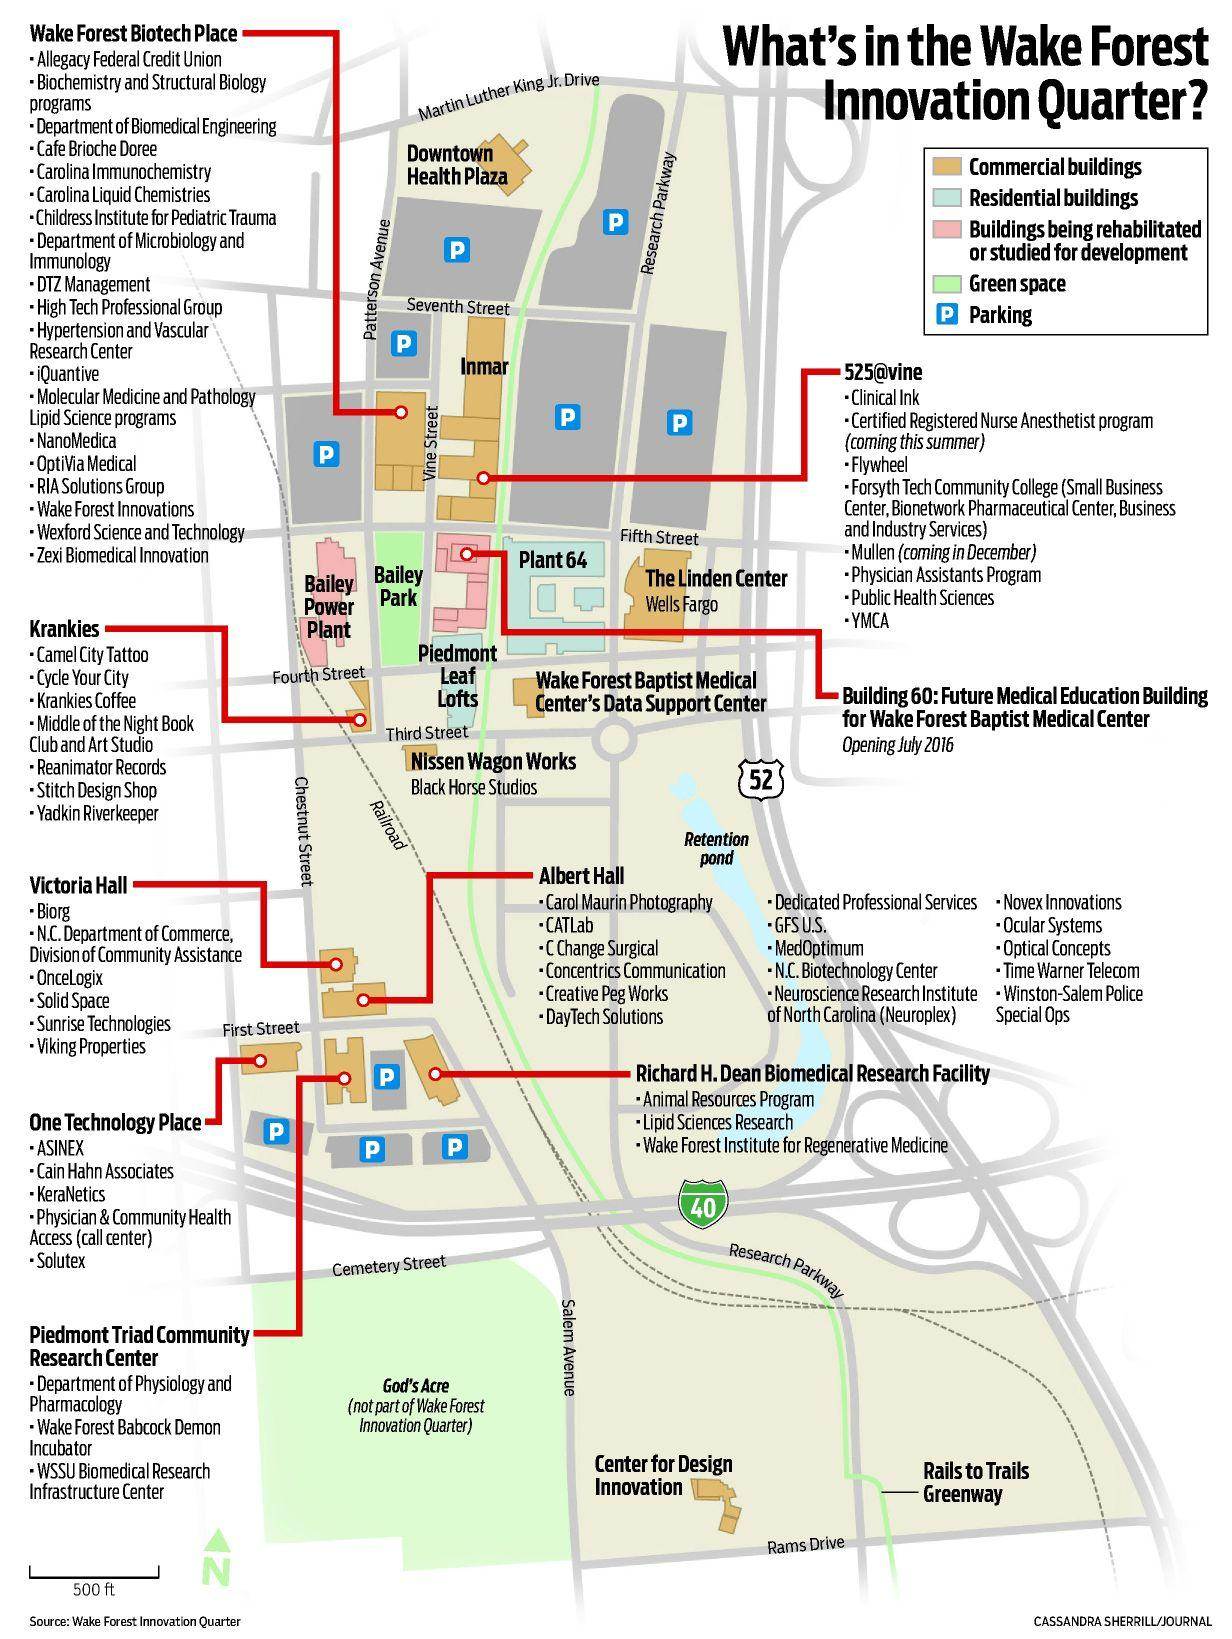 forsyth tech campus map Innovation As Driving Force Journalnow Com forsyth tech campus map